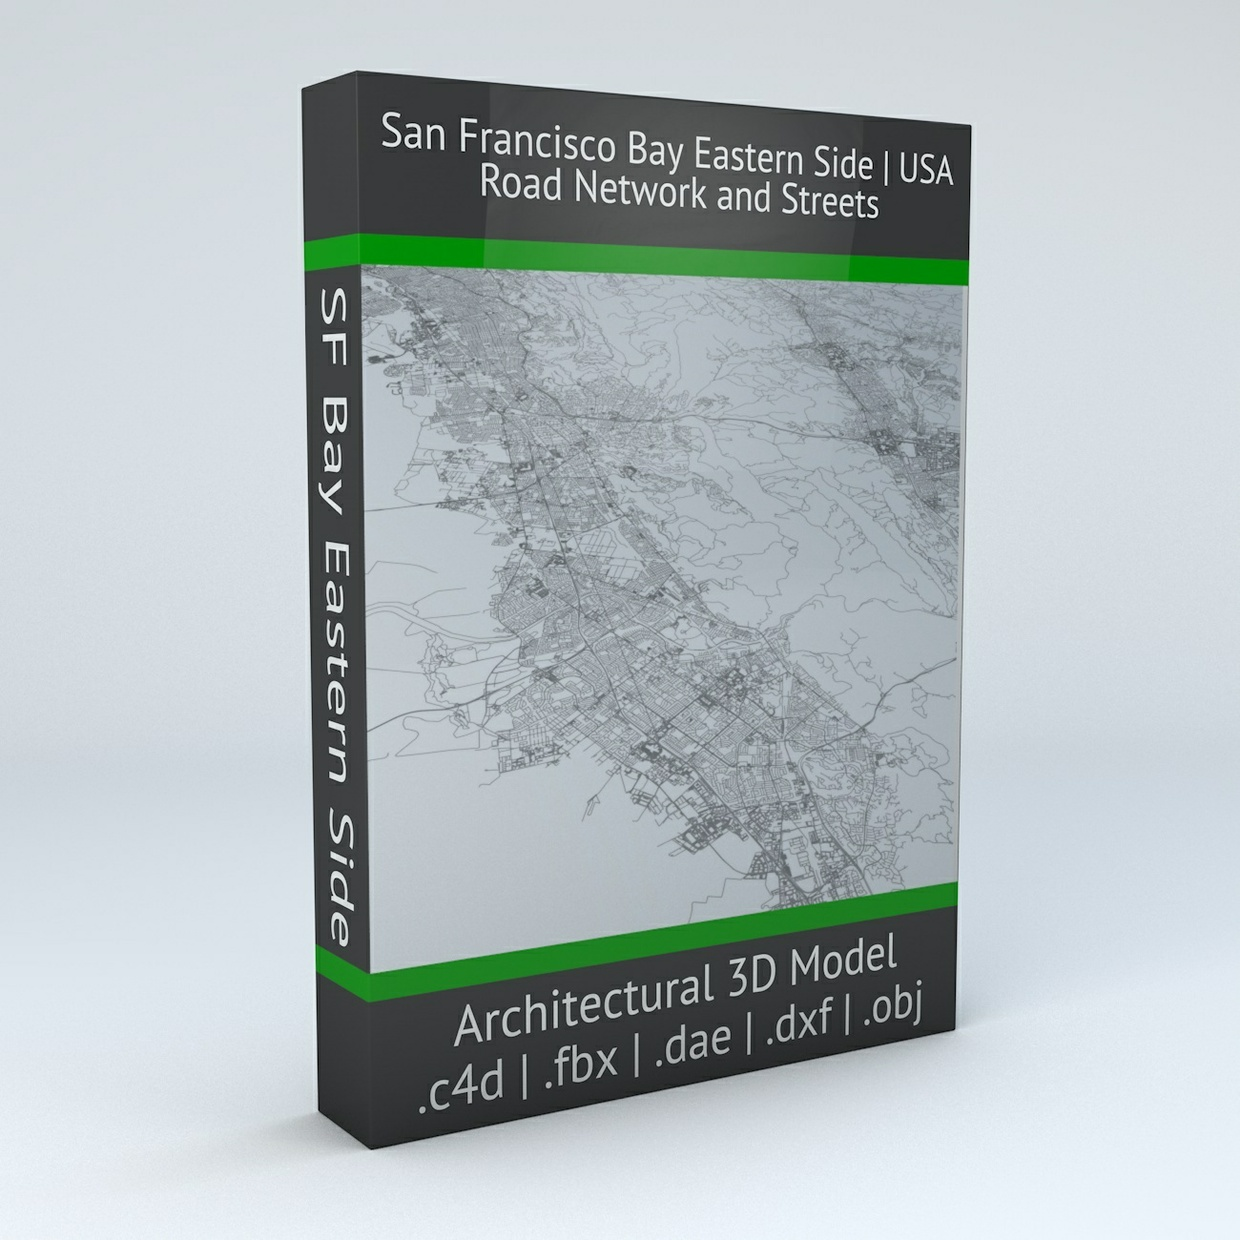 San Francisco Bay Eastern Side Area Road Network Architectural 3D Model